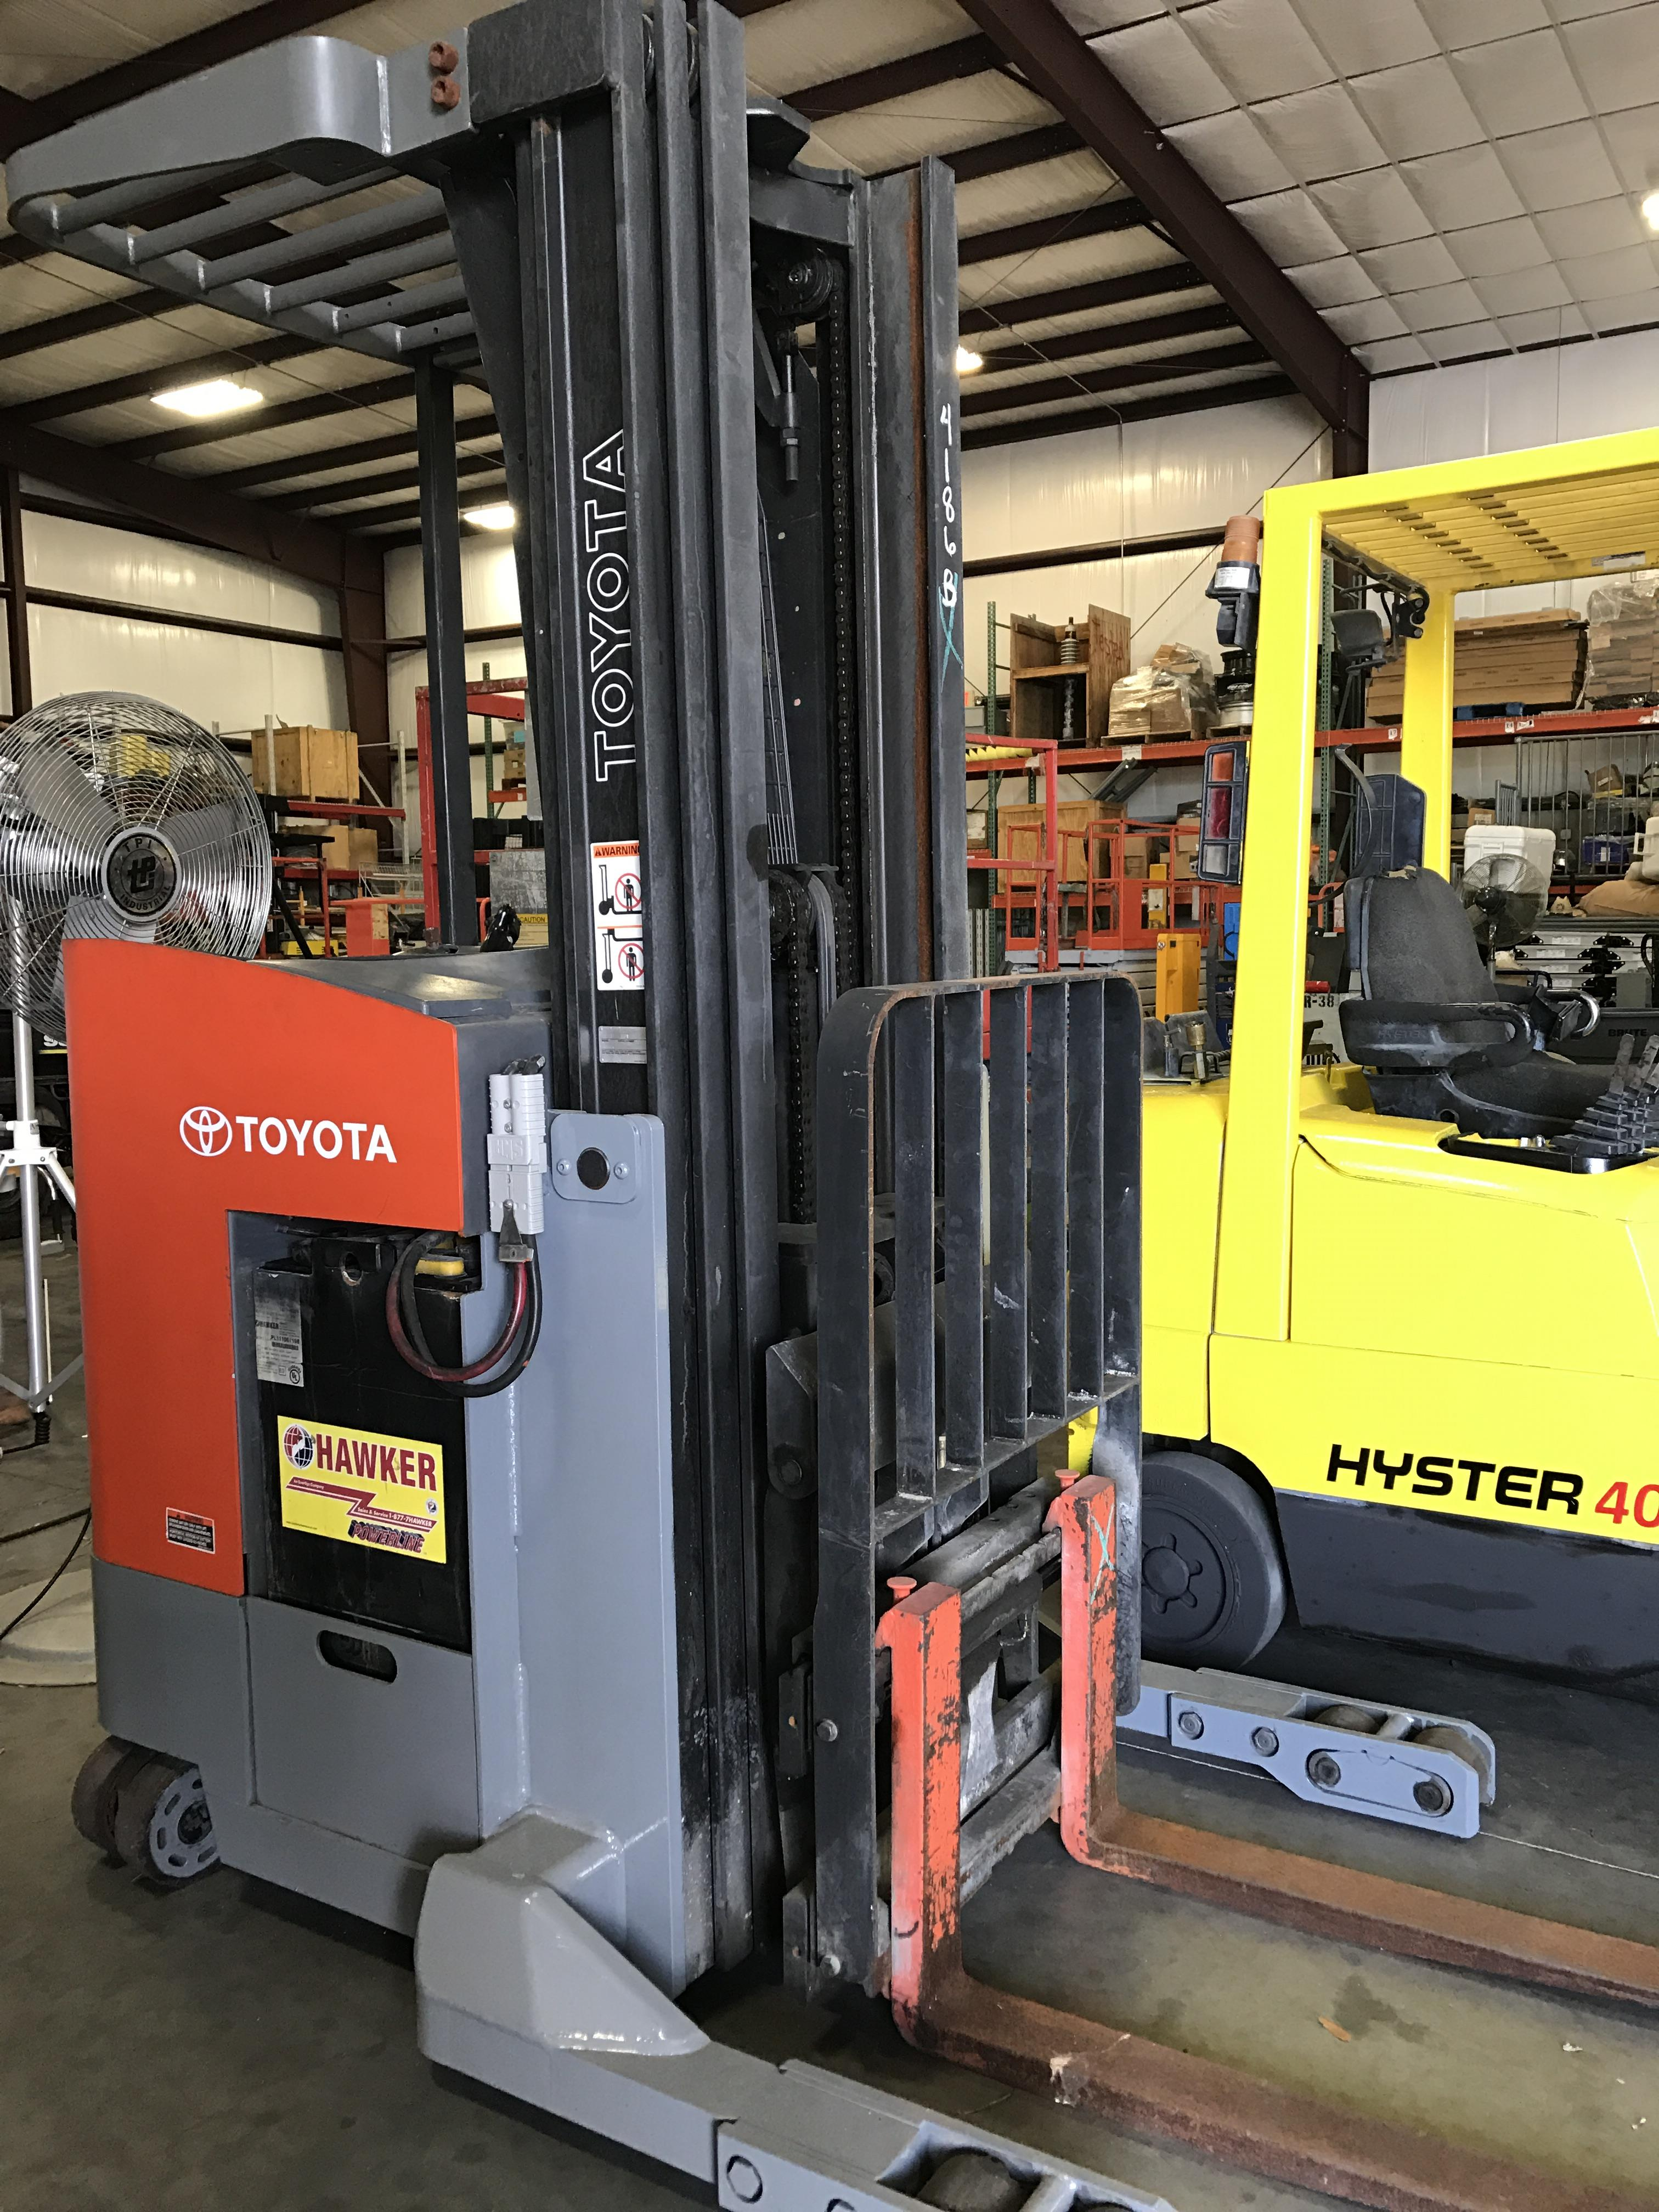 Lot 21 - TOYOTA ELECTRIC FORKLIFT, 36 V, MOD. 7BRU18, 3 STAGE